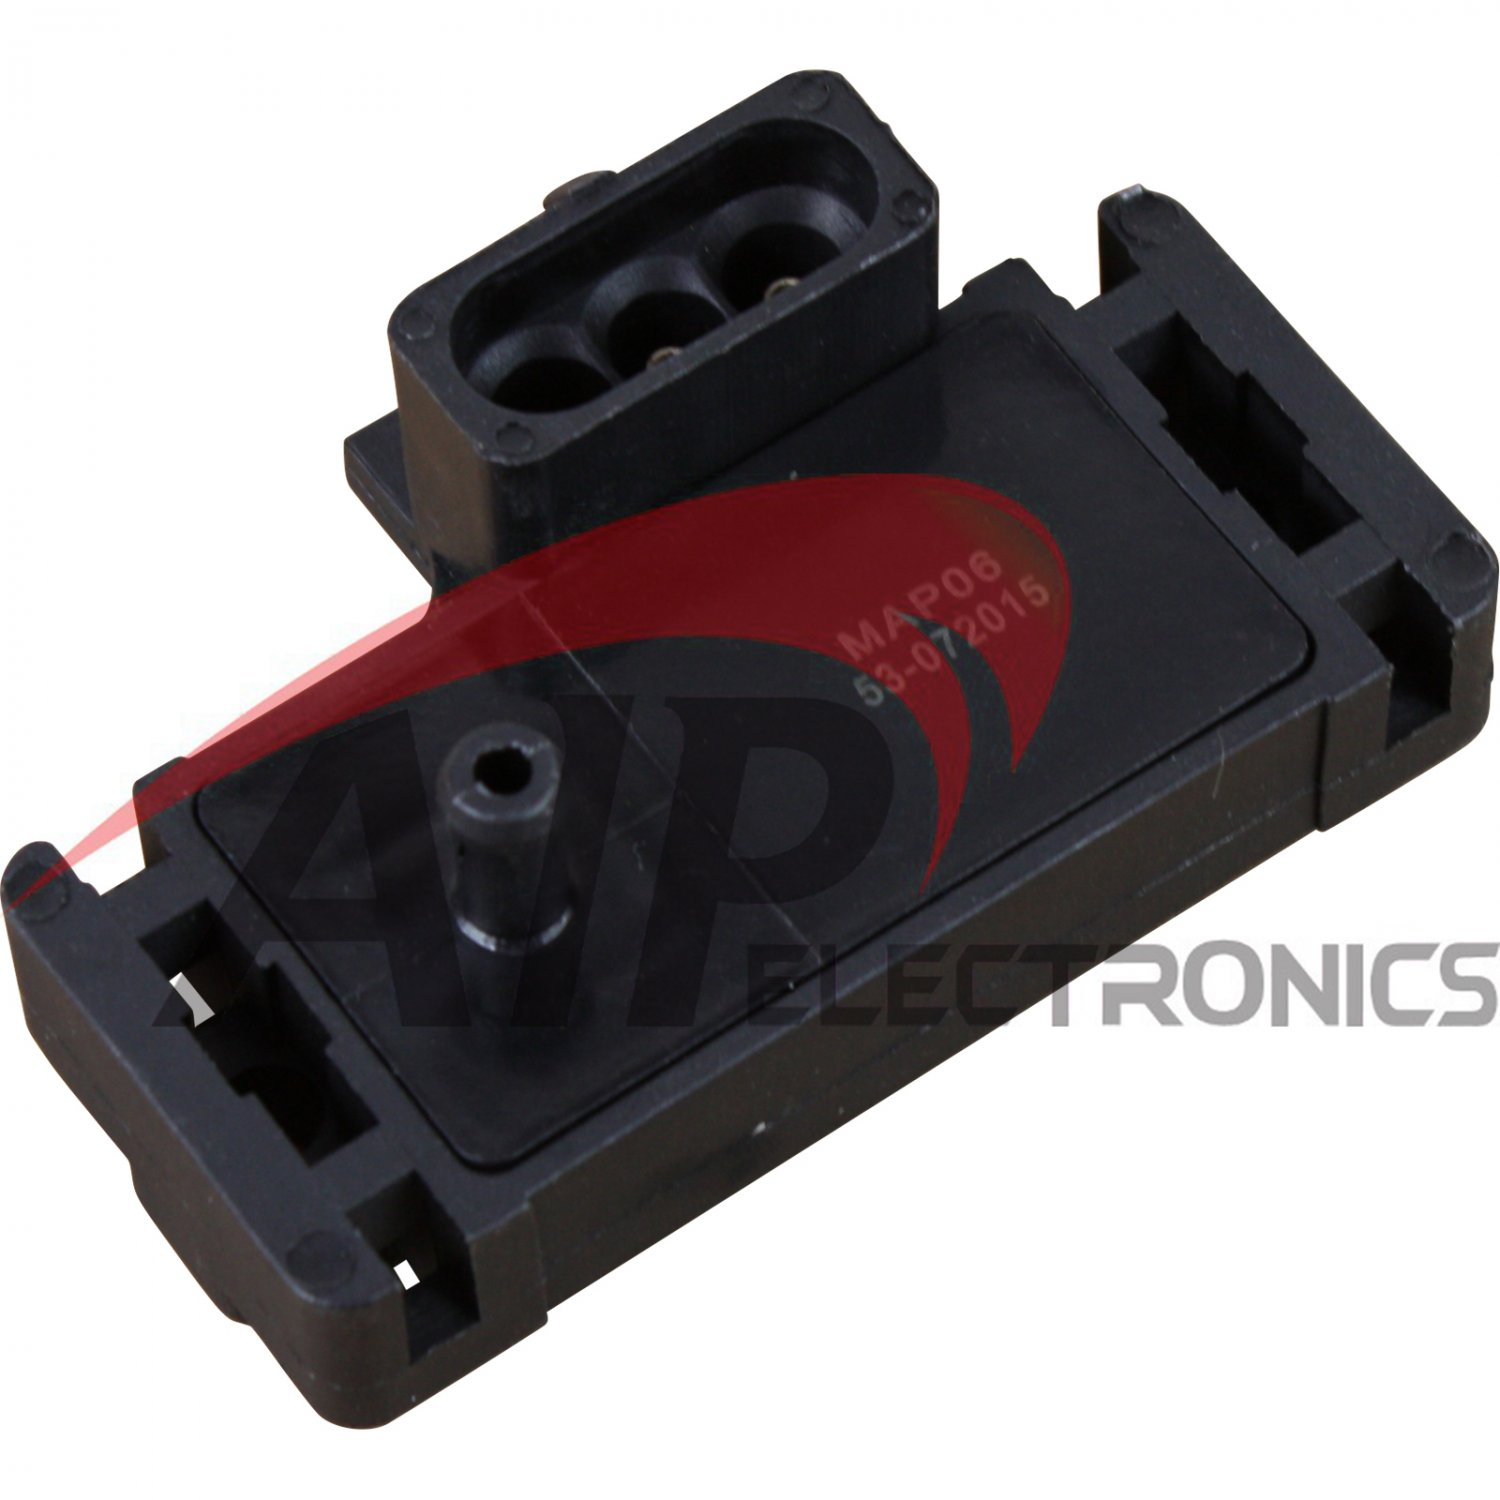 Brand New Map Intake Sensor MANIFOLD ABSOLUTE PRESSURE 82-04 ACURA BUICK CHEVY Complete Oem Fit  MAP